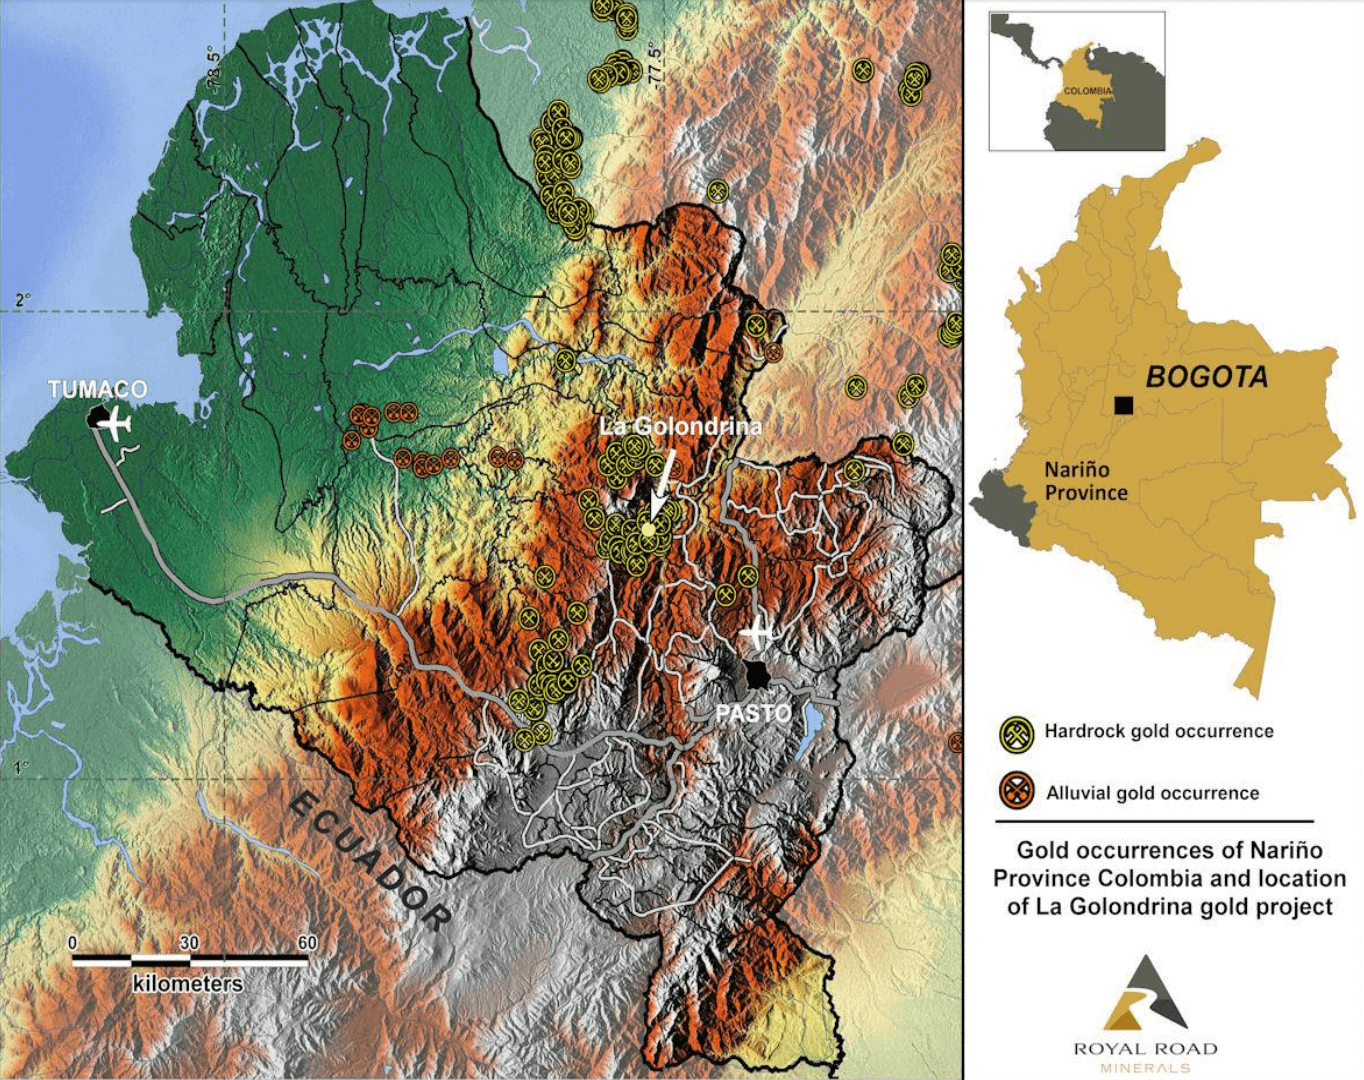 Where the Golondrina project is located in Colombia